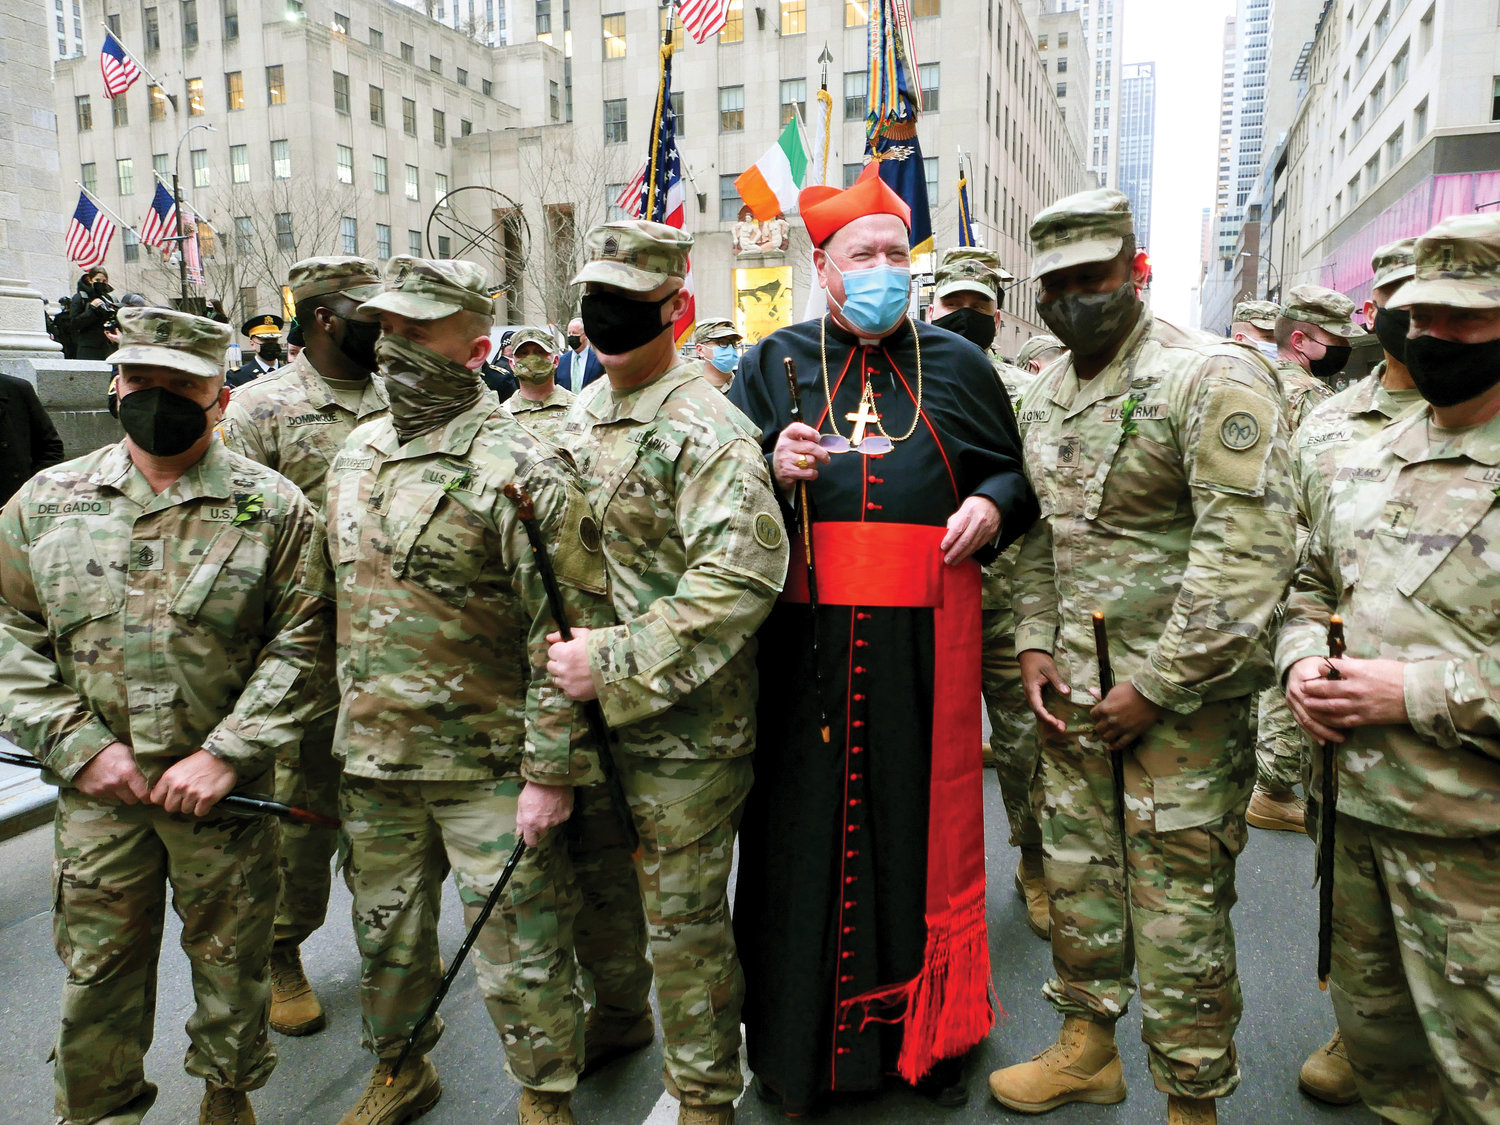 Before celebrating Mass for St. Patrick's Day, Cardinal Dolan greets members of the Fighting 69th Regiment outside St. Patrick's Cathedral March 17.